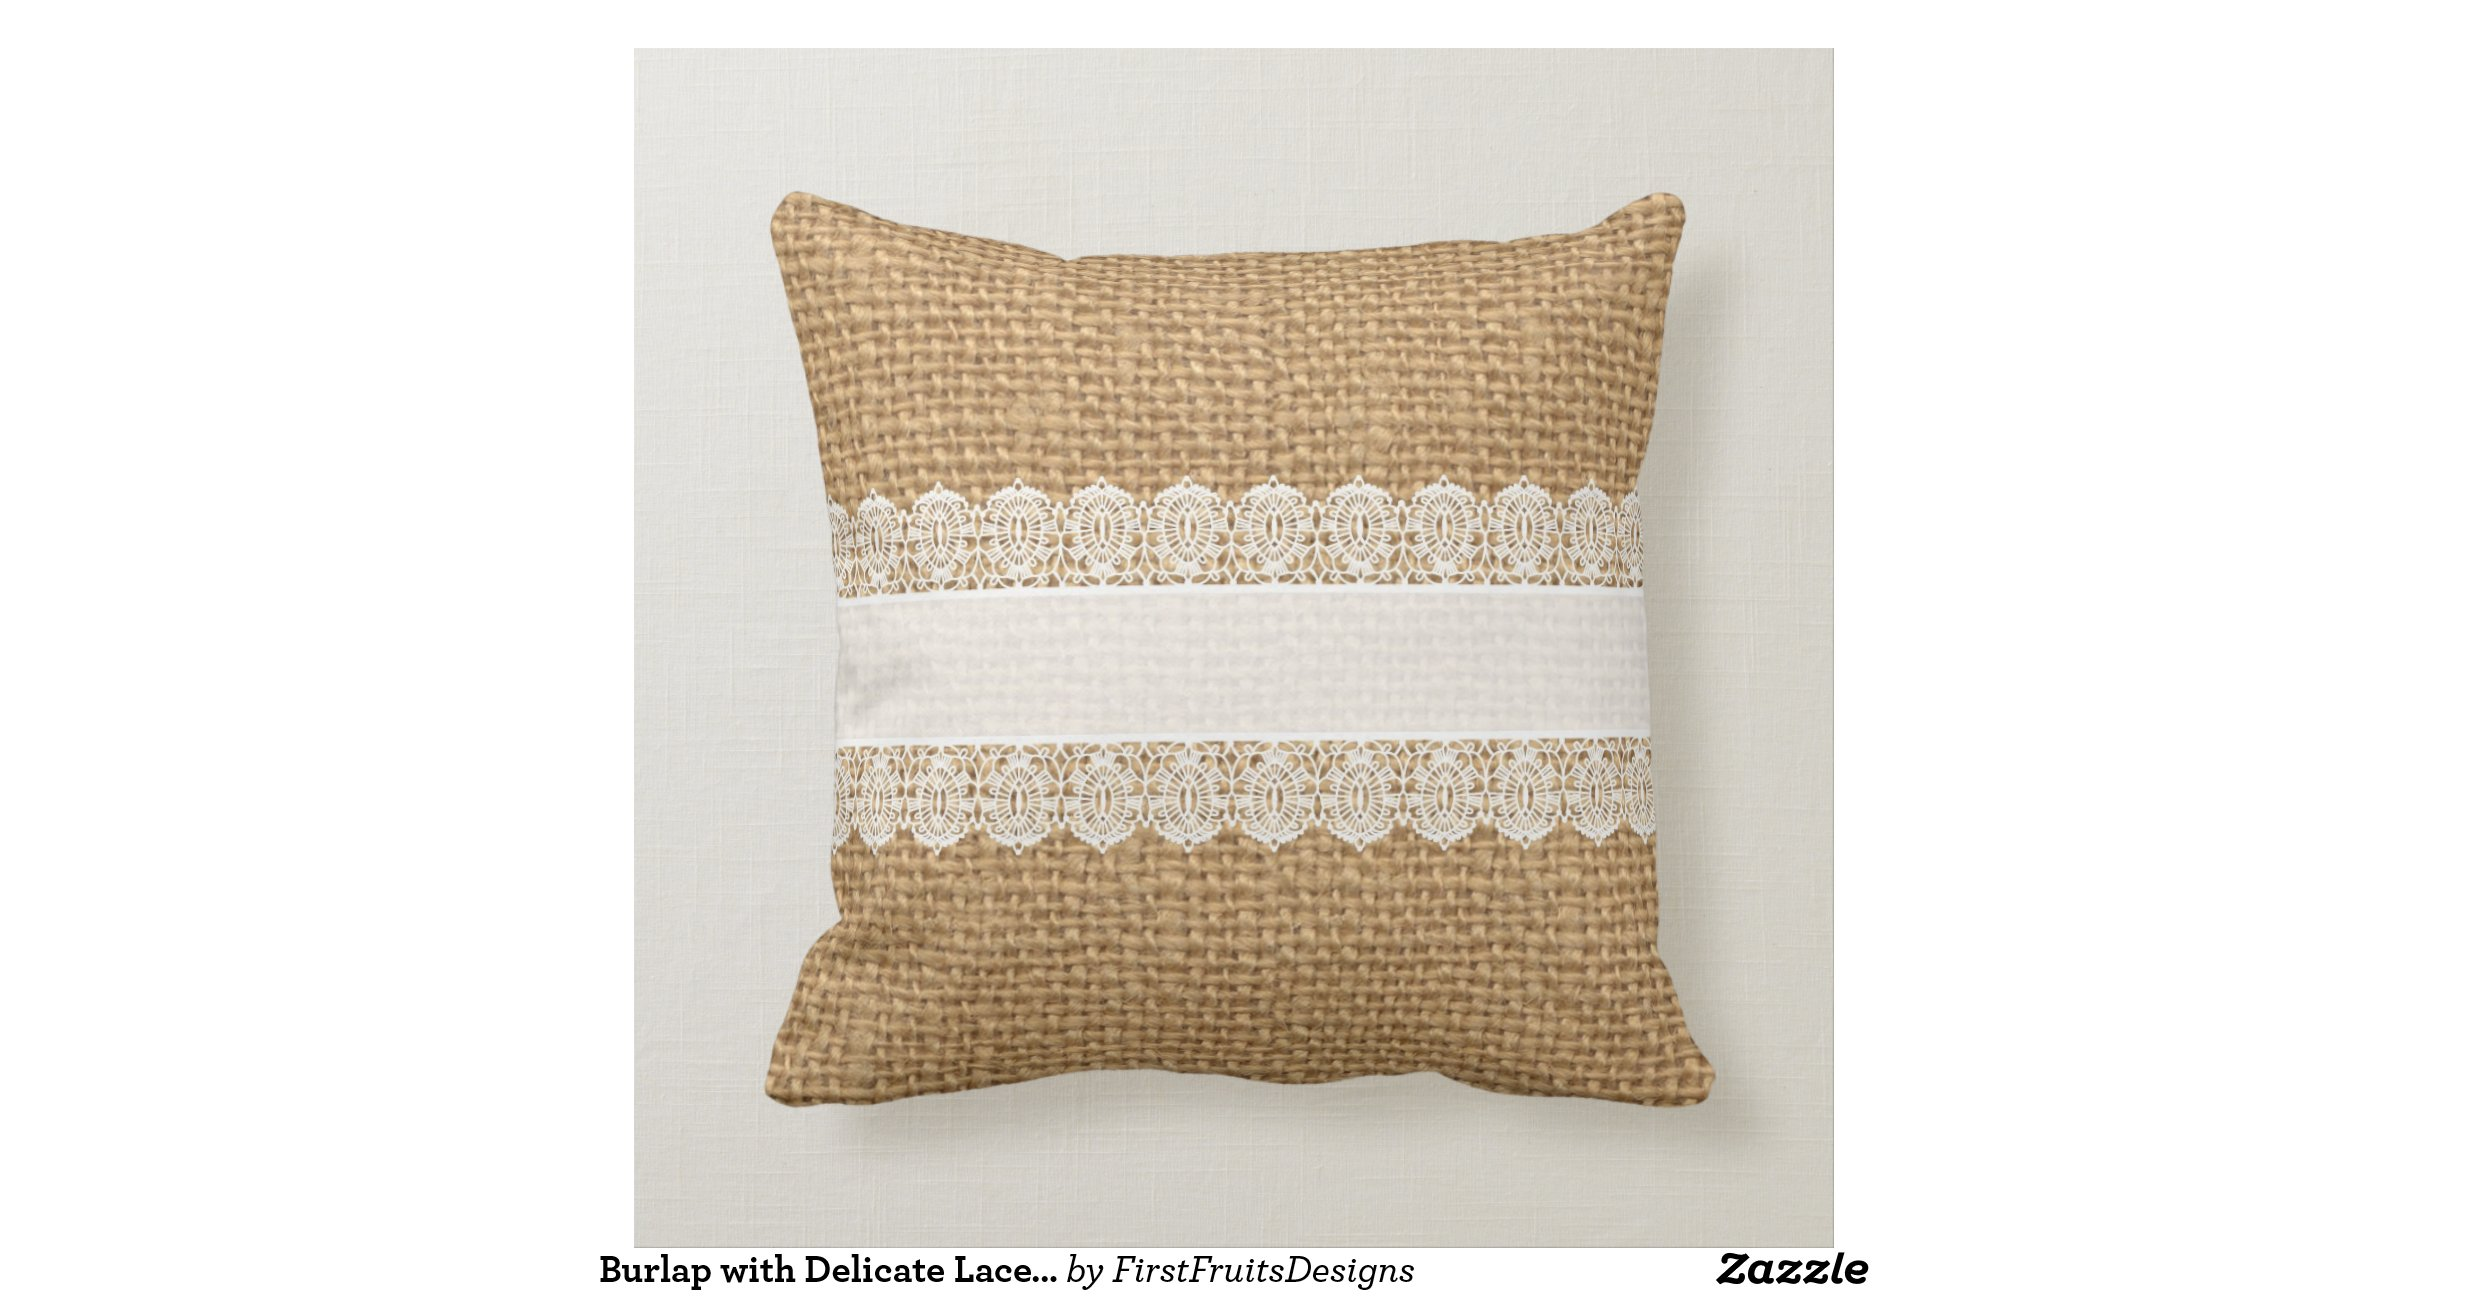 Shabby Chic Style Pillows : Burlap with Delicate Lace - Shabby Chic Style Pillow Zazzle